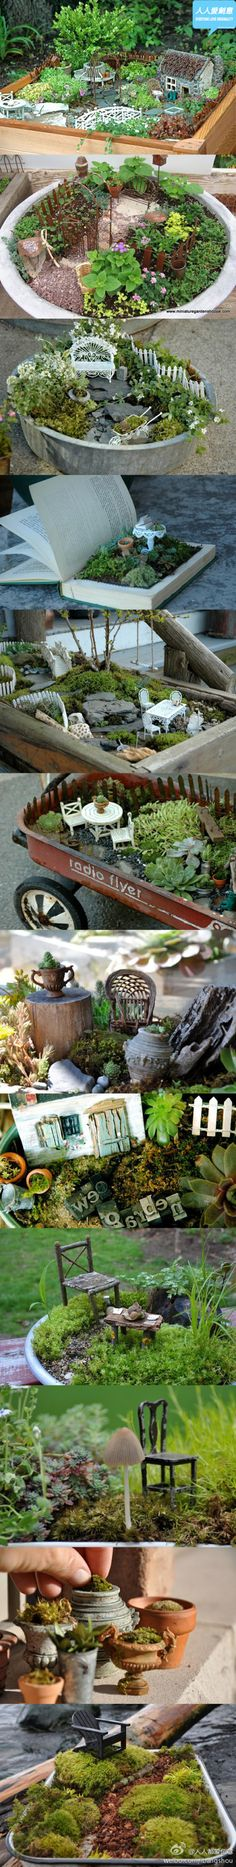 I seriously need some fairy gardens for the deck this summer...especially the one in the book!